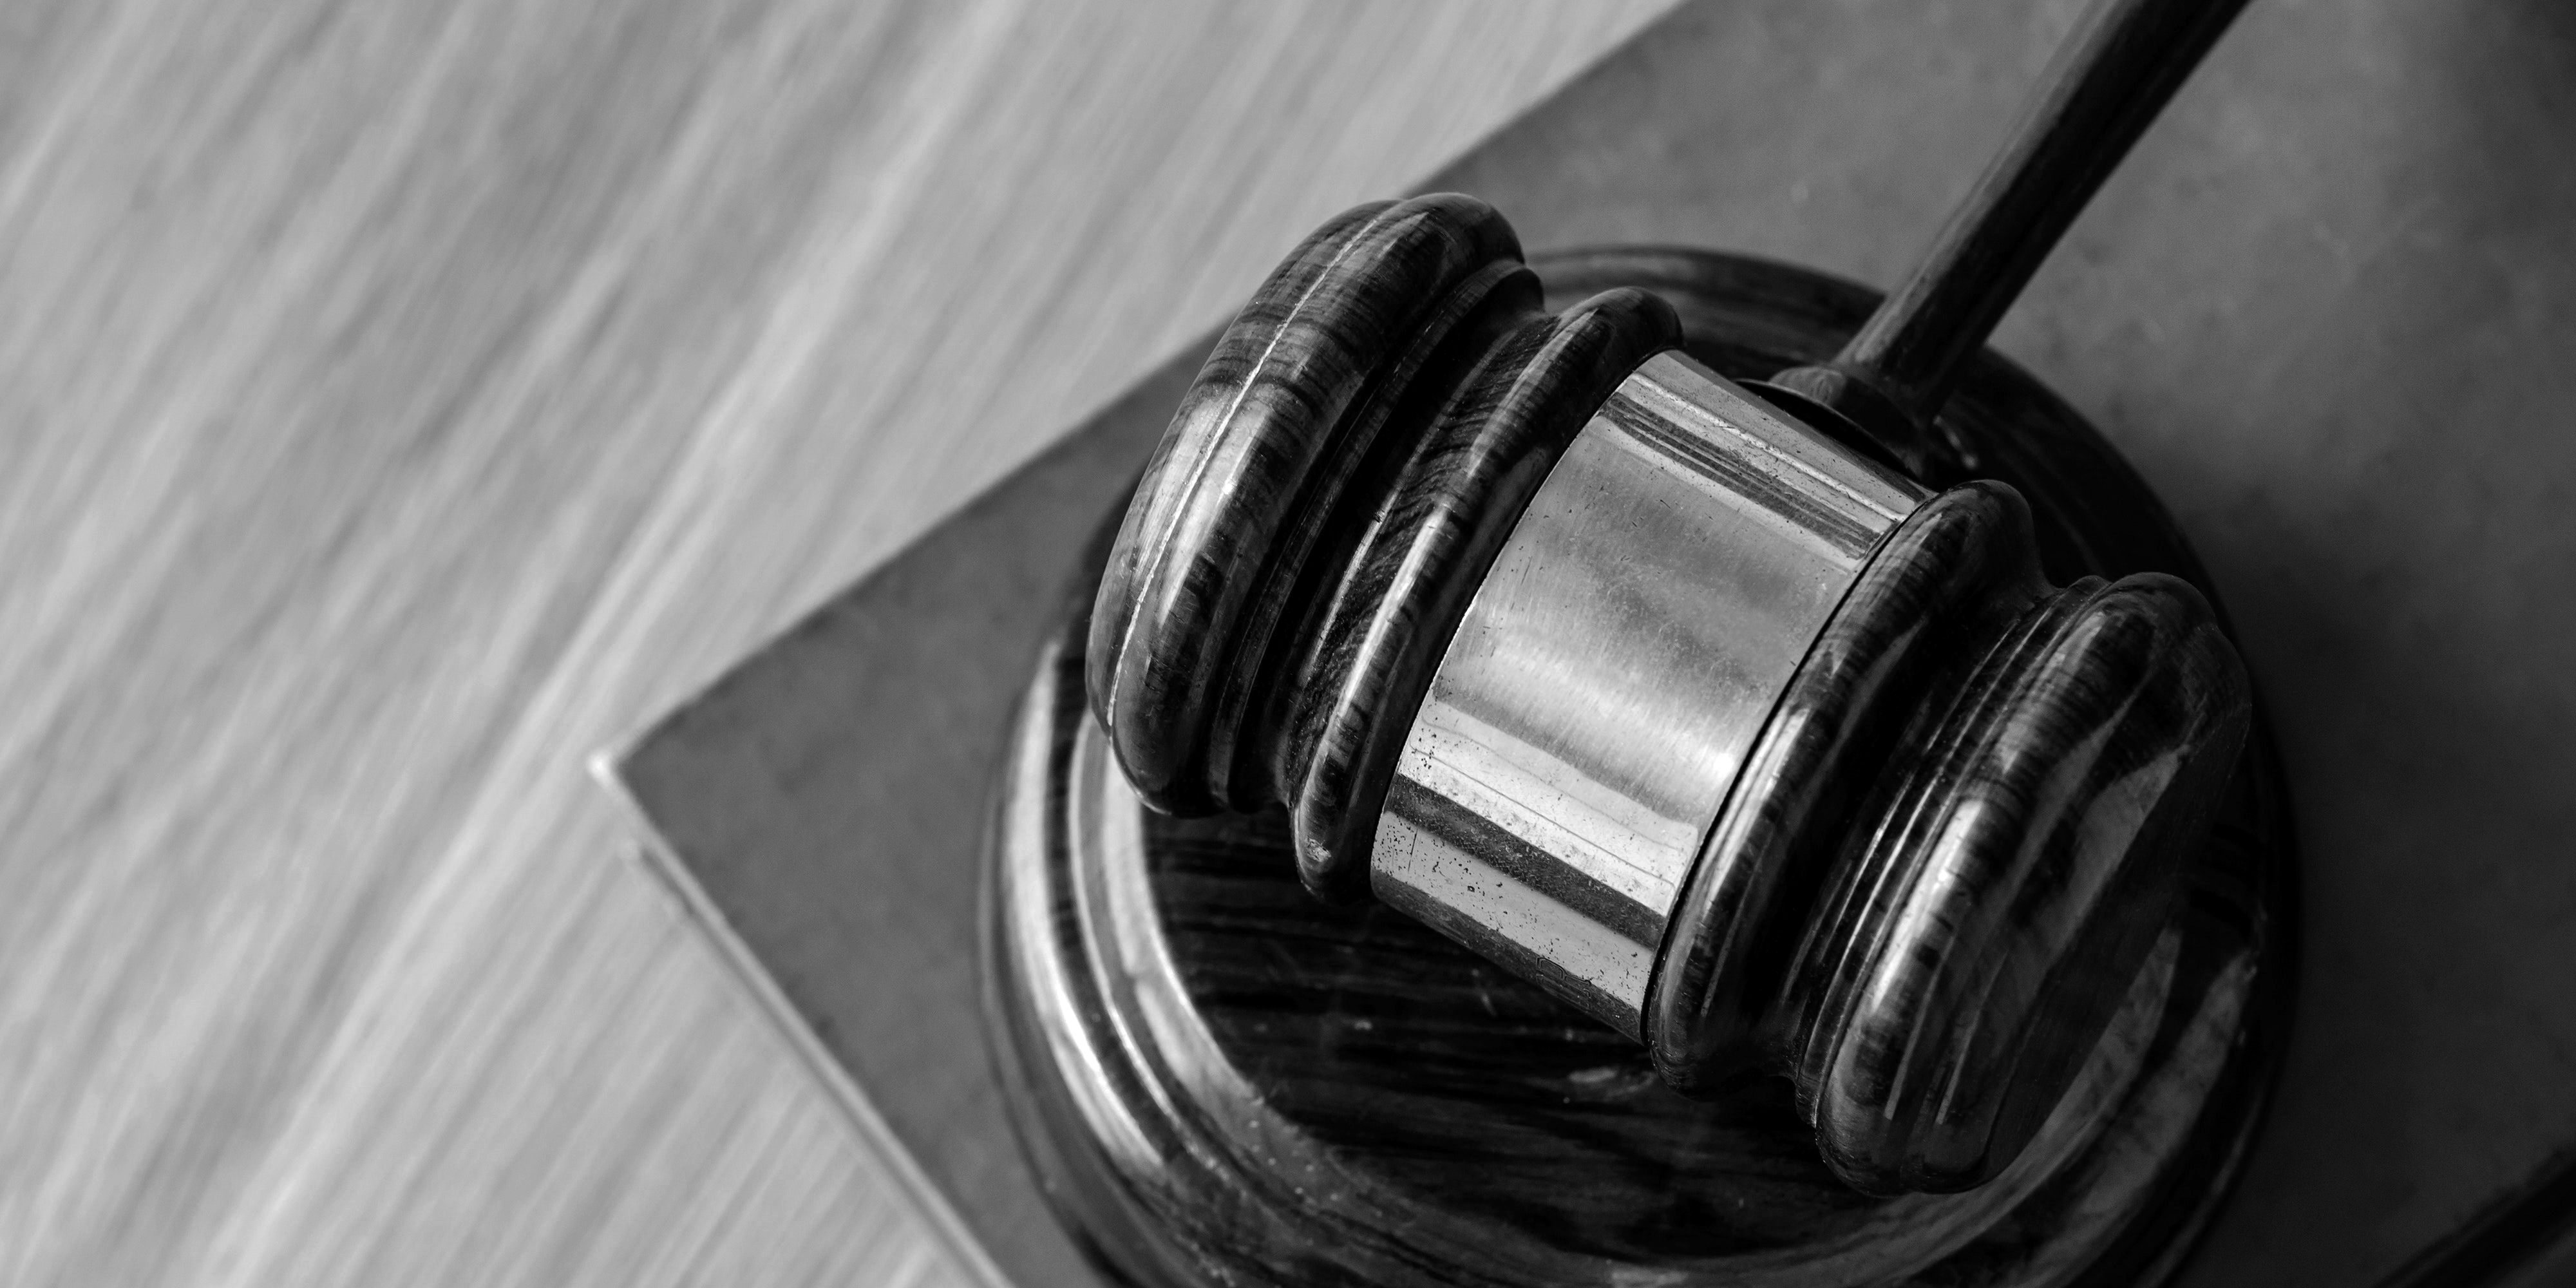 black and white image of a gavel laying on top of a wooden surface